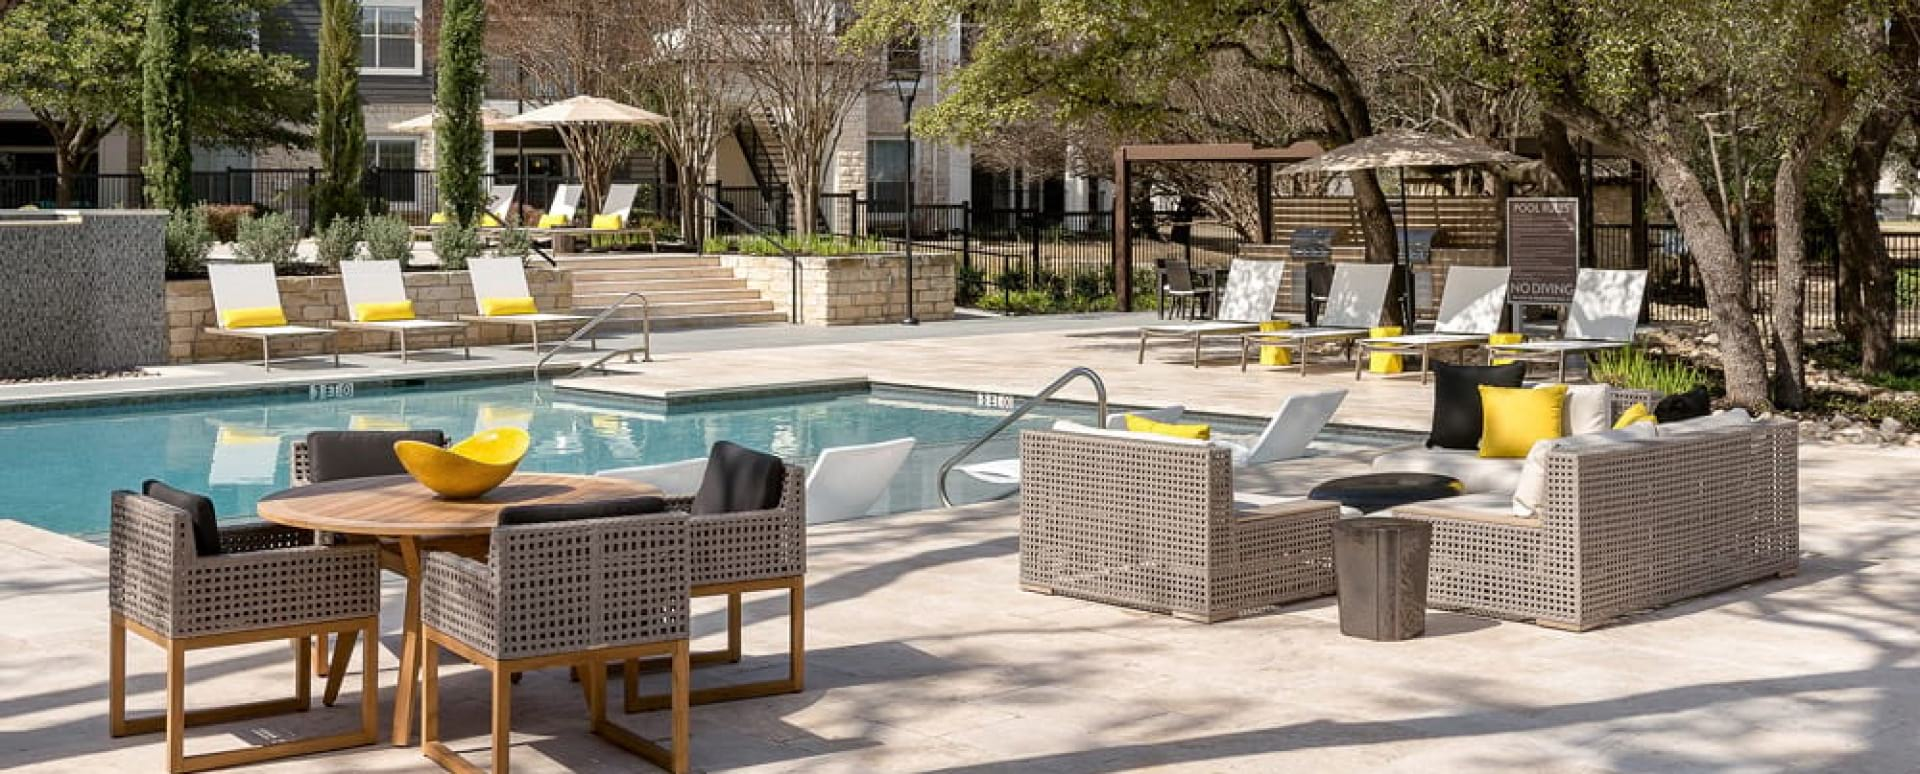 Poolside lounge chairs and umbrellas at our upscale apartments in Round Rock, TX